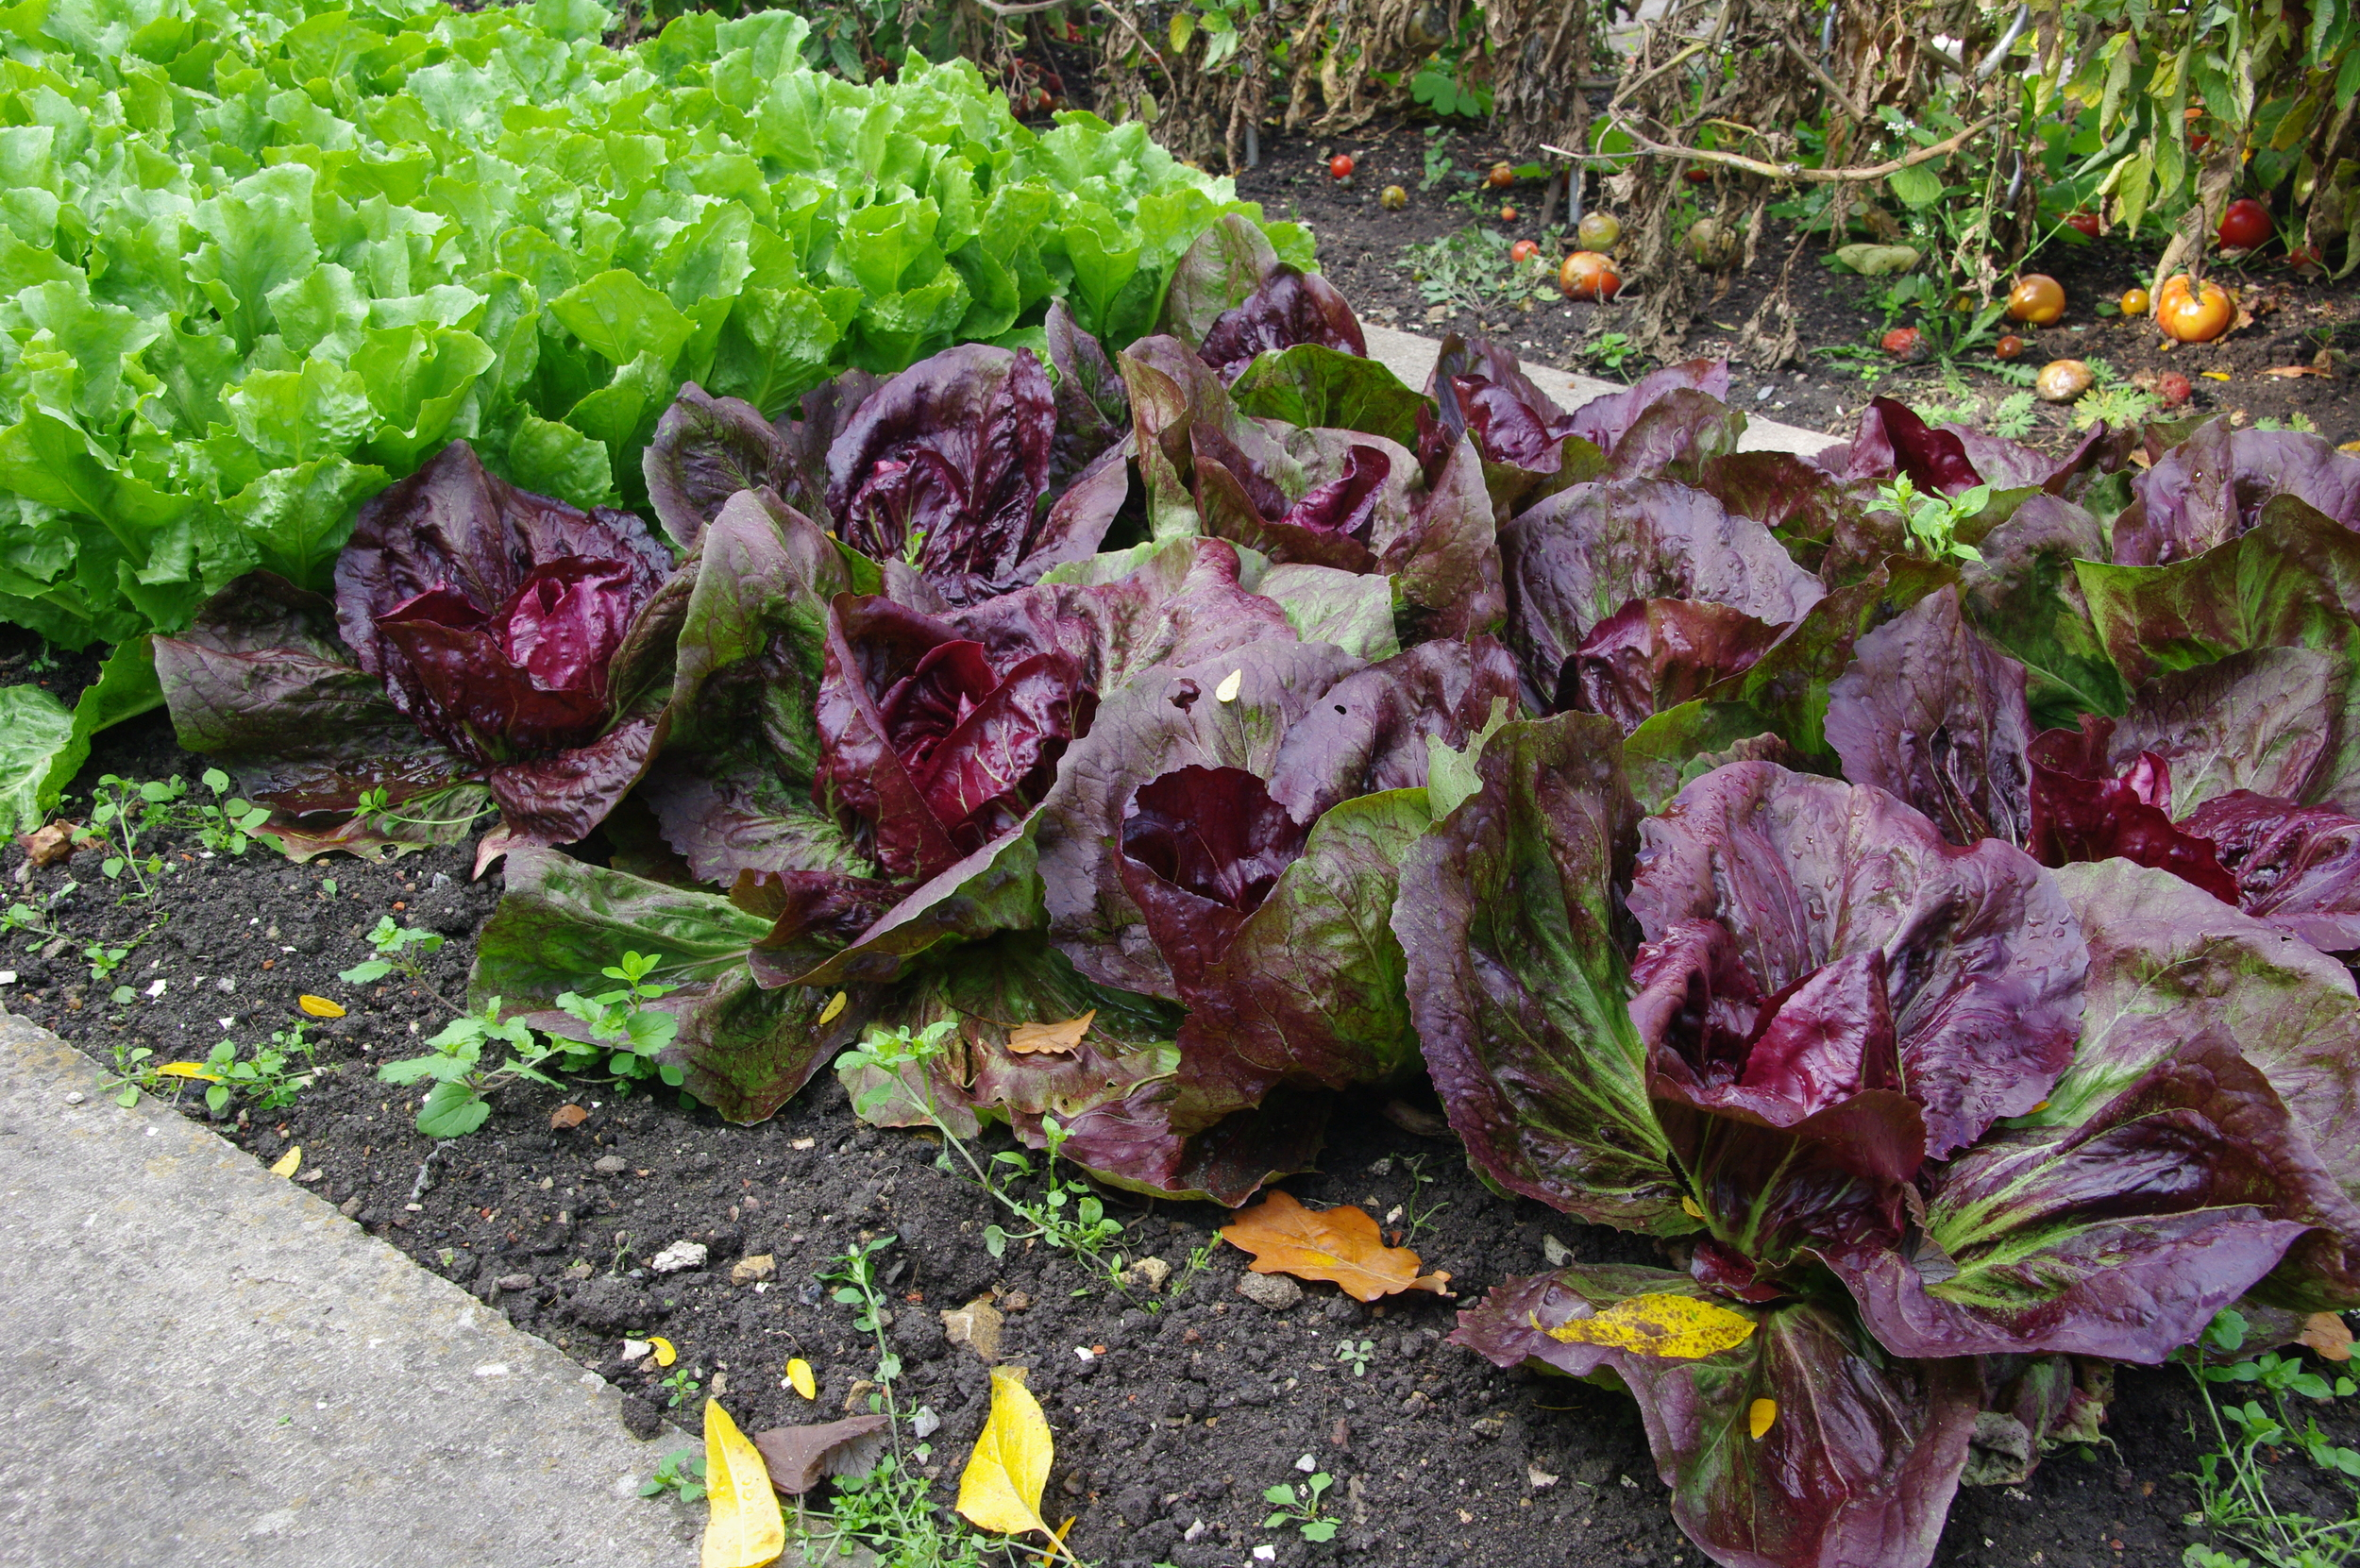 Lettuce is one of the easiest, fastest and most rewarding (not to mention budget-saving) vegetables to grow. Start them now from seed, and try some different mixes.